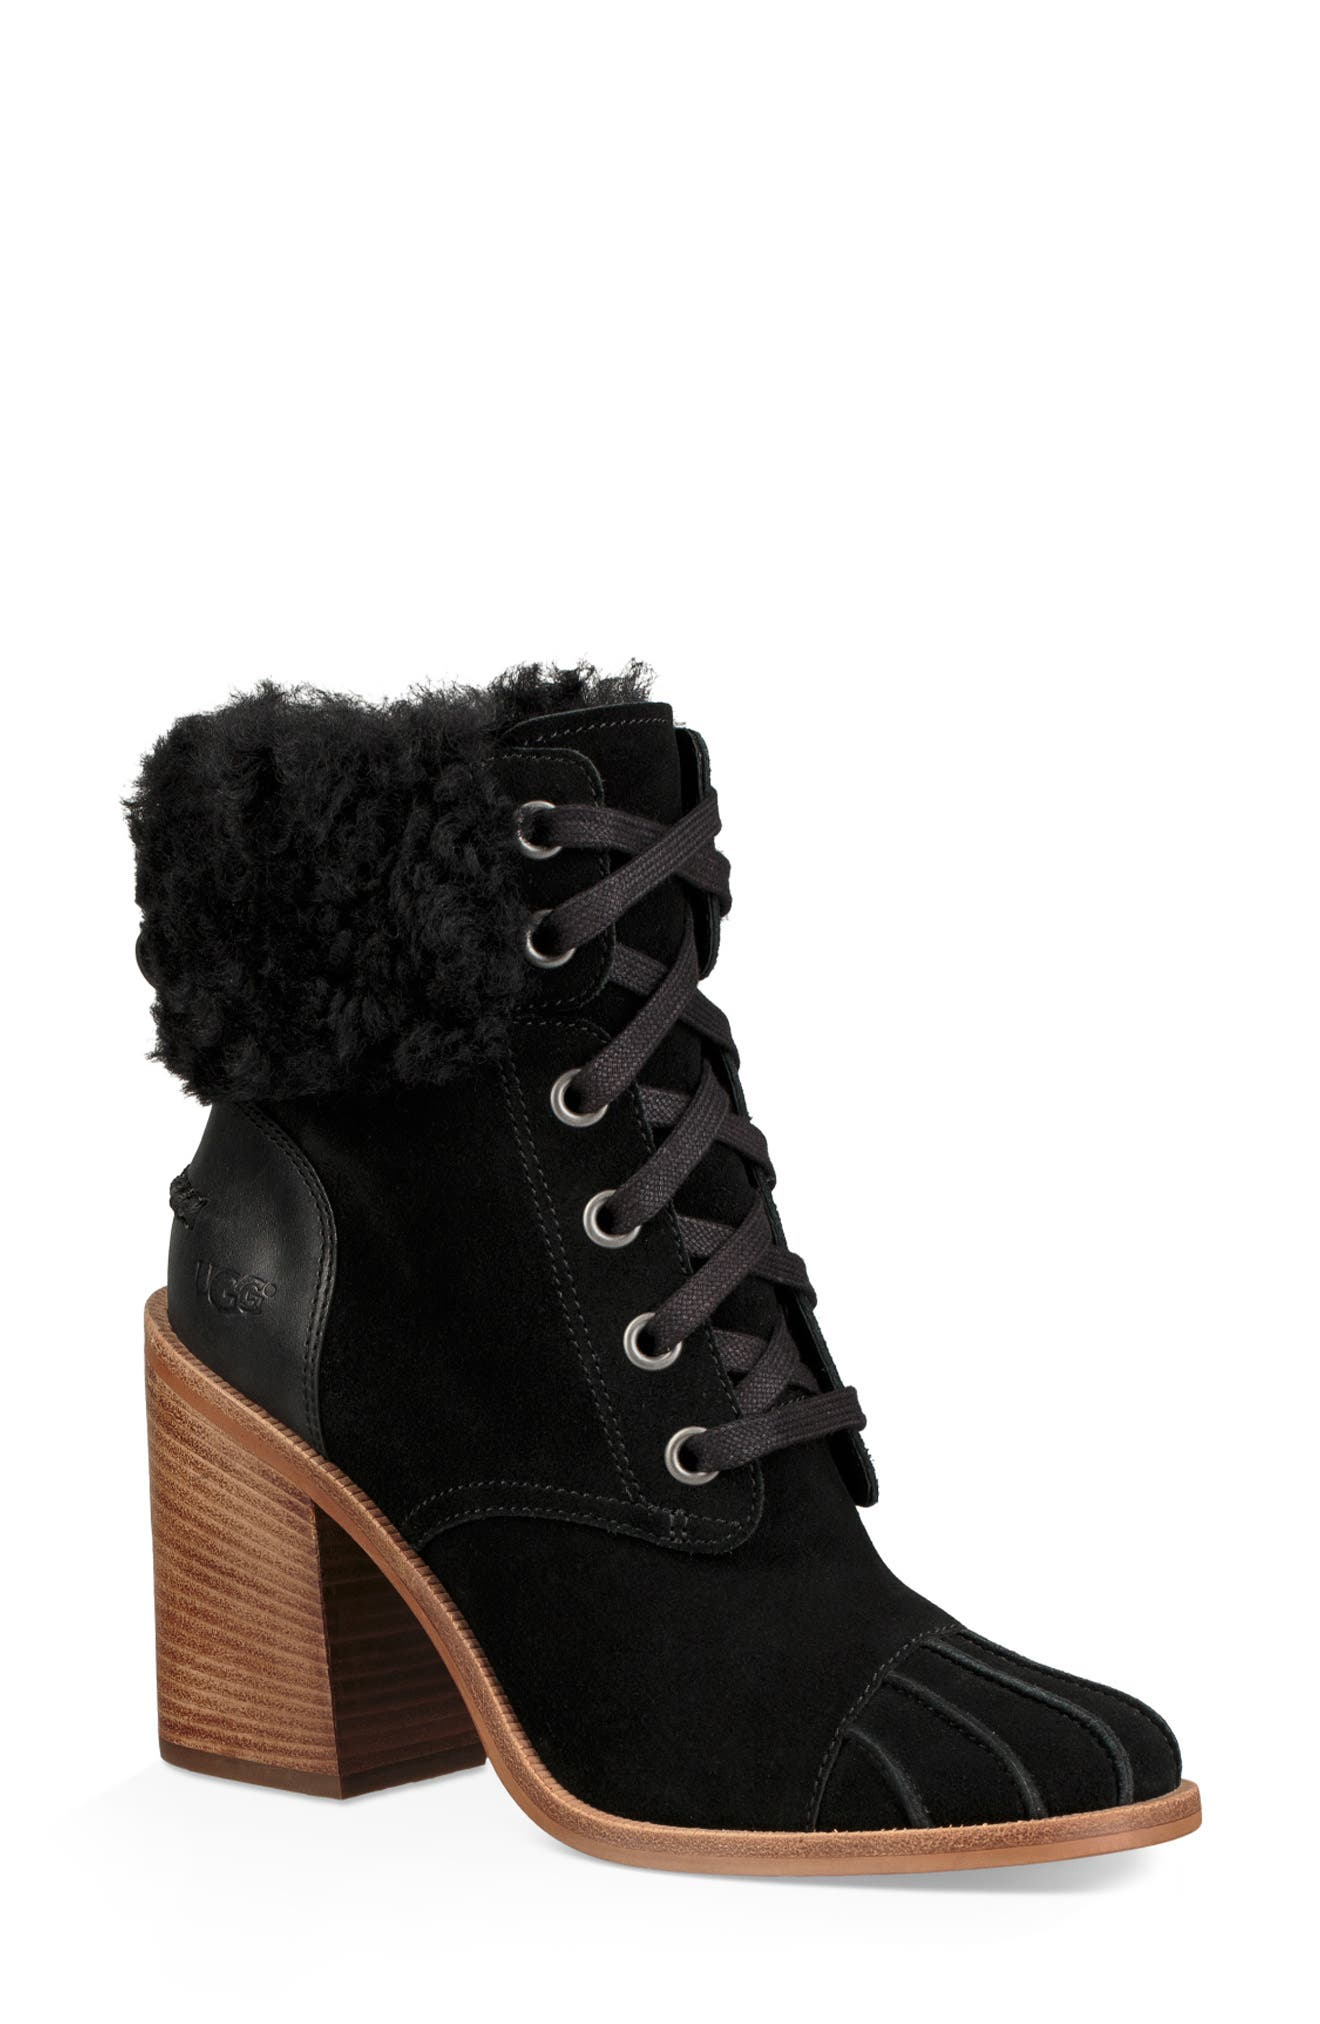 Jaxon Cuff Bootie,                             Main thumbnail 1, color,                             BLACK